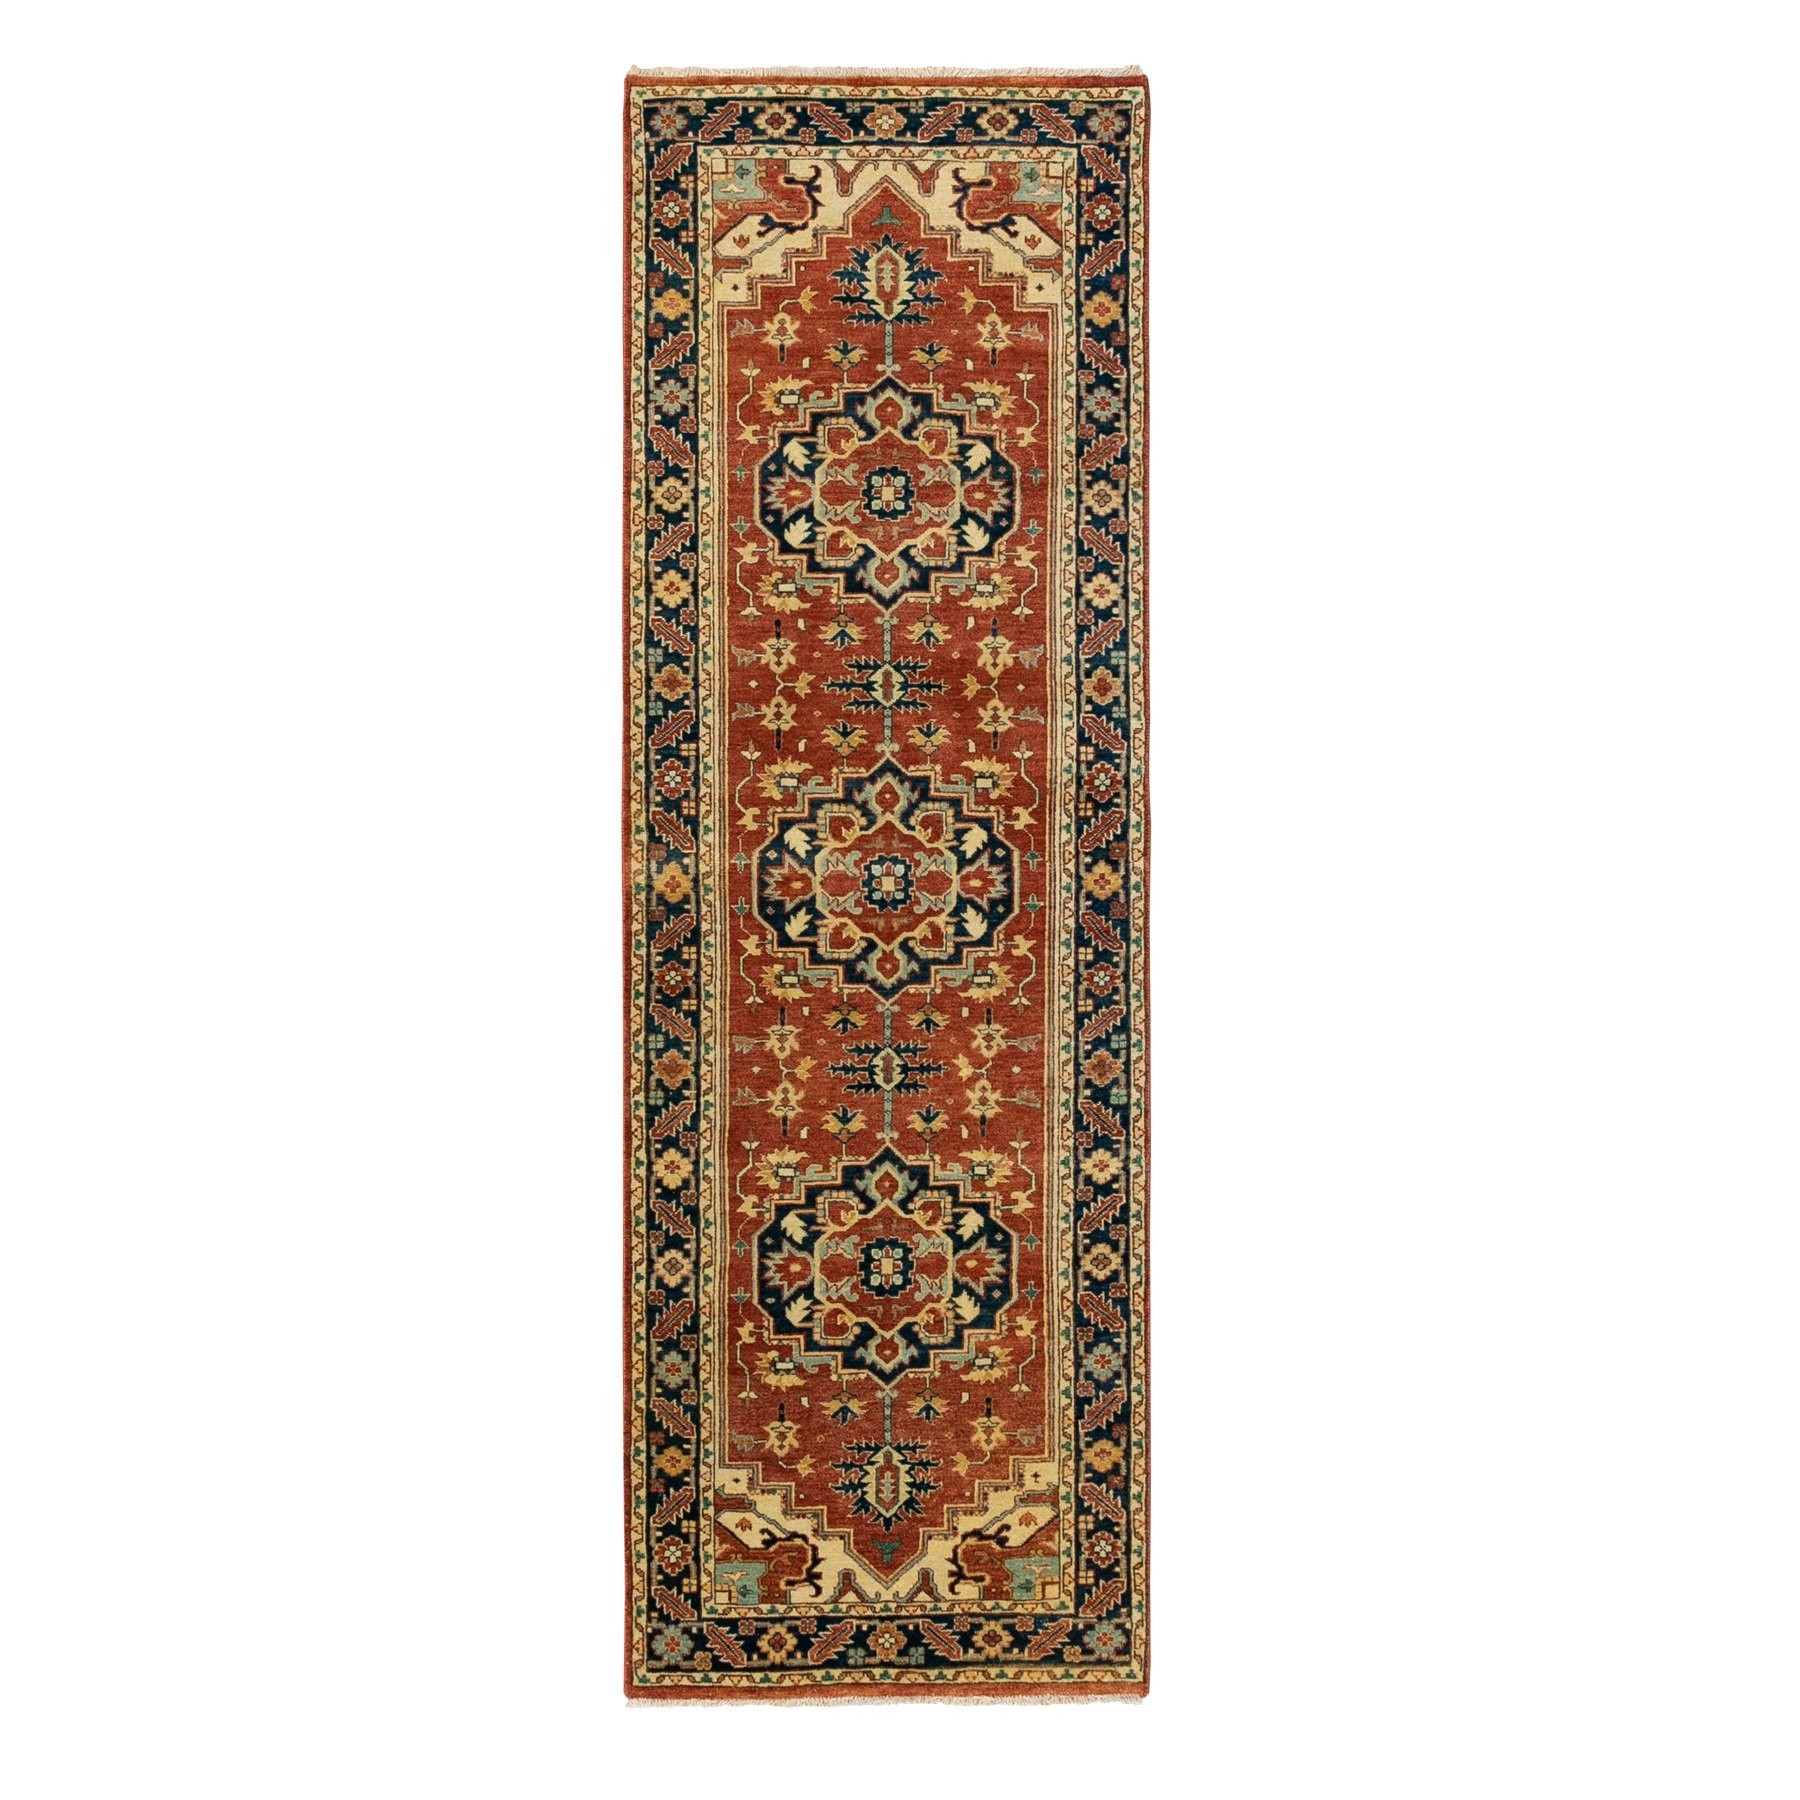 "2'8""x8'2"" Hand Knotted Red Antiqued Heriz Re-Creation Velvety Wool Oriental Runner Rug"